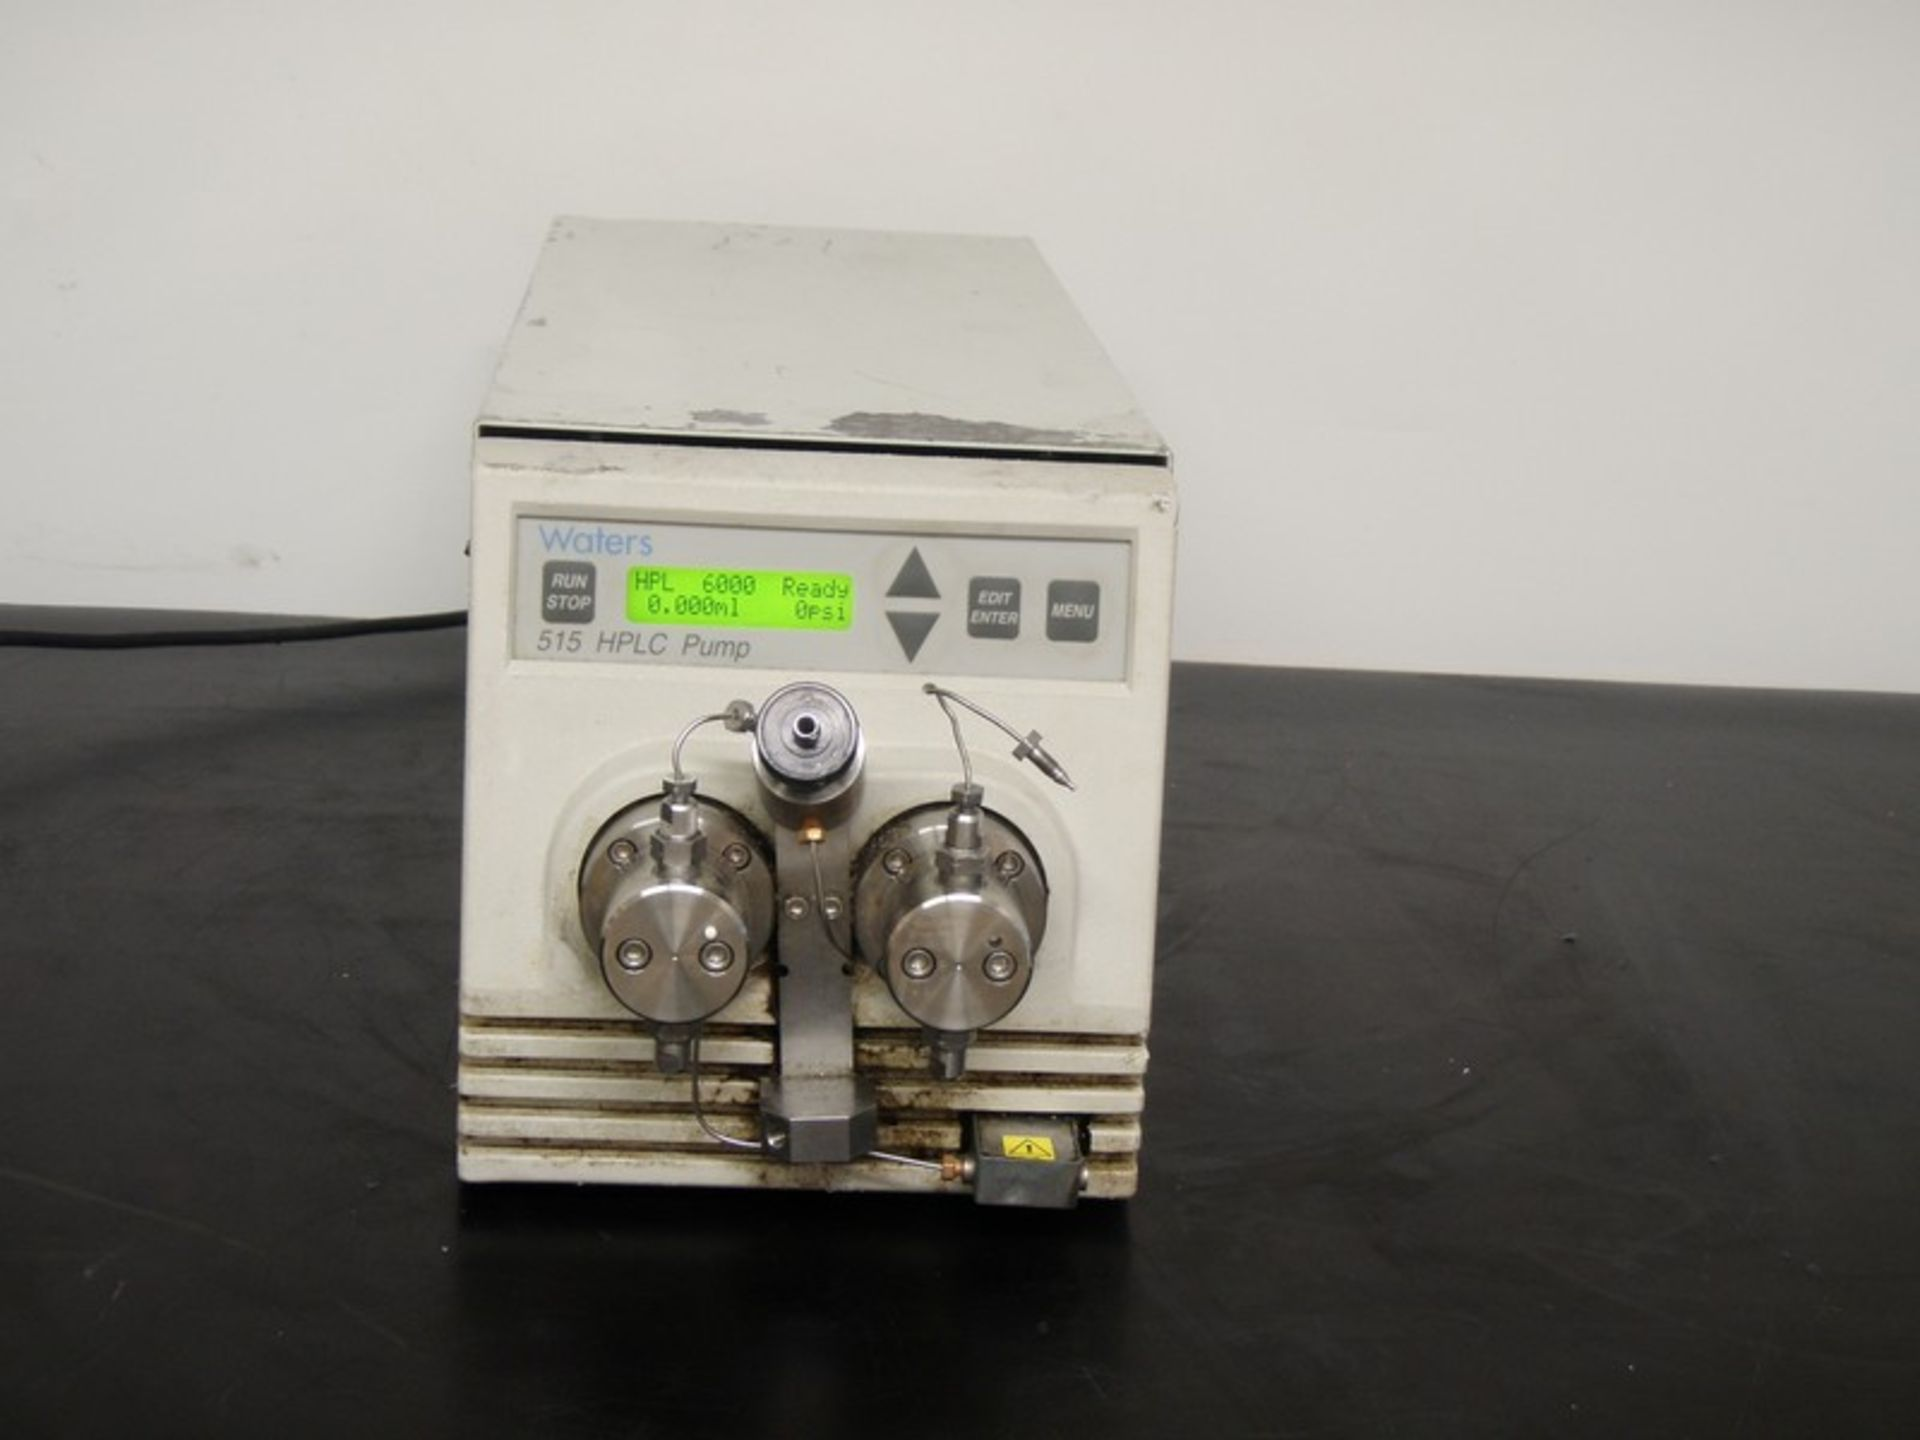 Lot 239 - Waters 515 HPLC Pump, Model WAT20700, S/N C08515 285A (NOTE: Pump Powers On)***Located in NC***